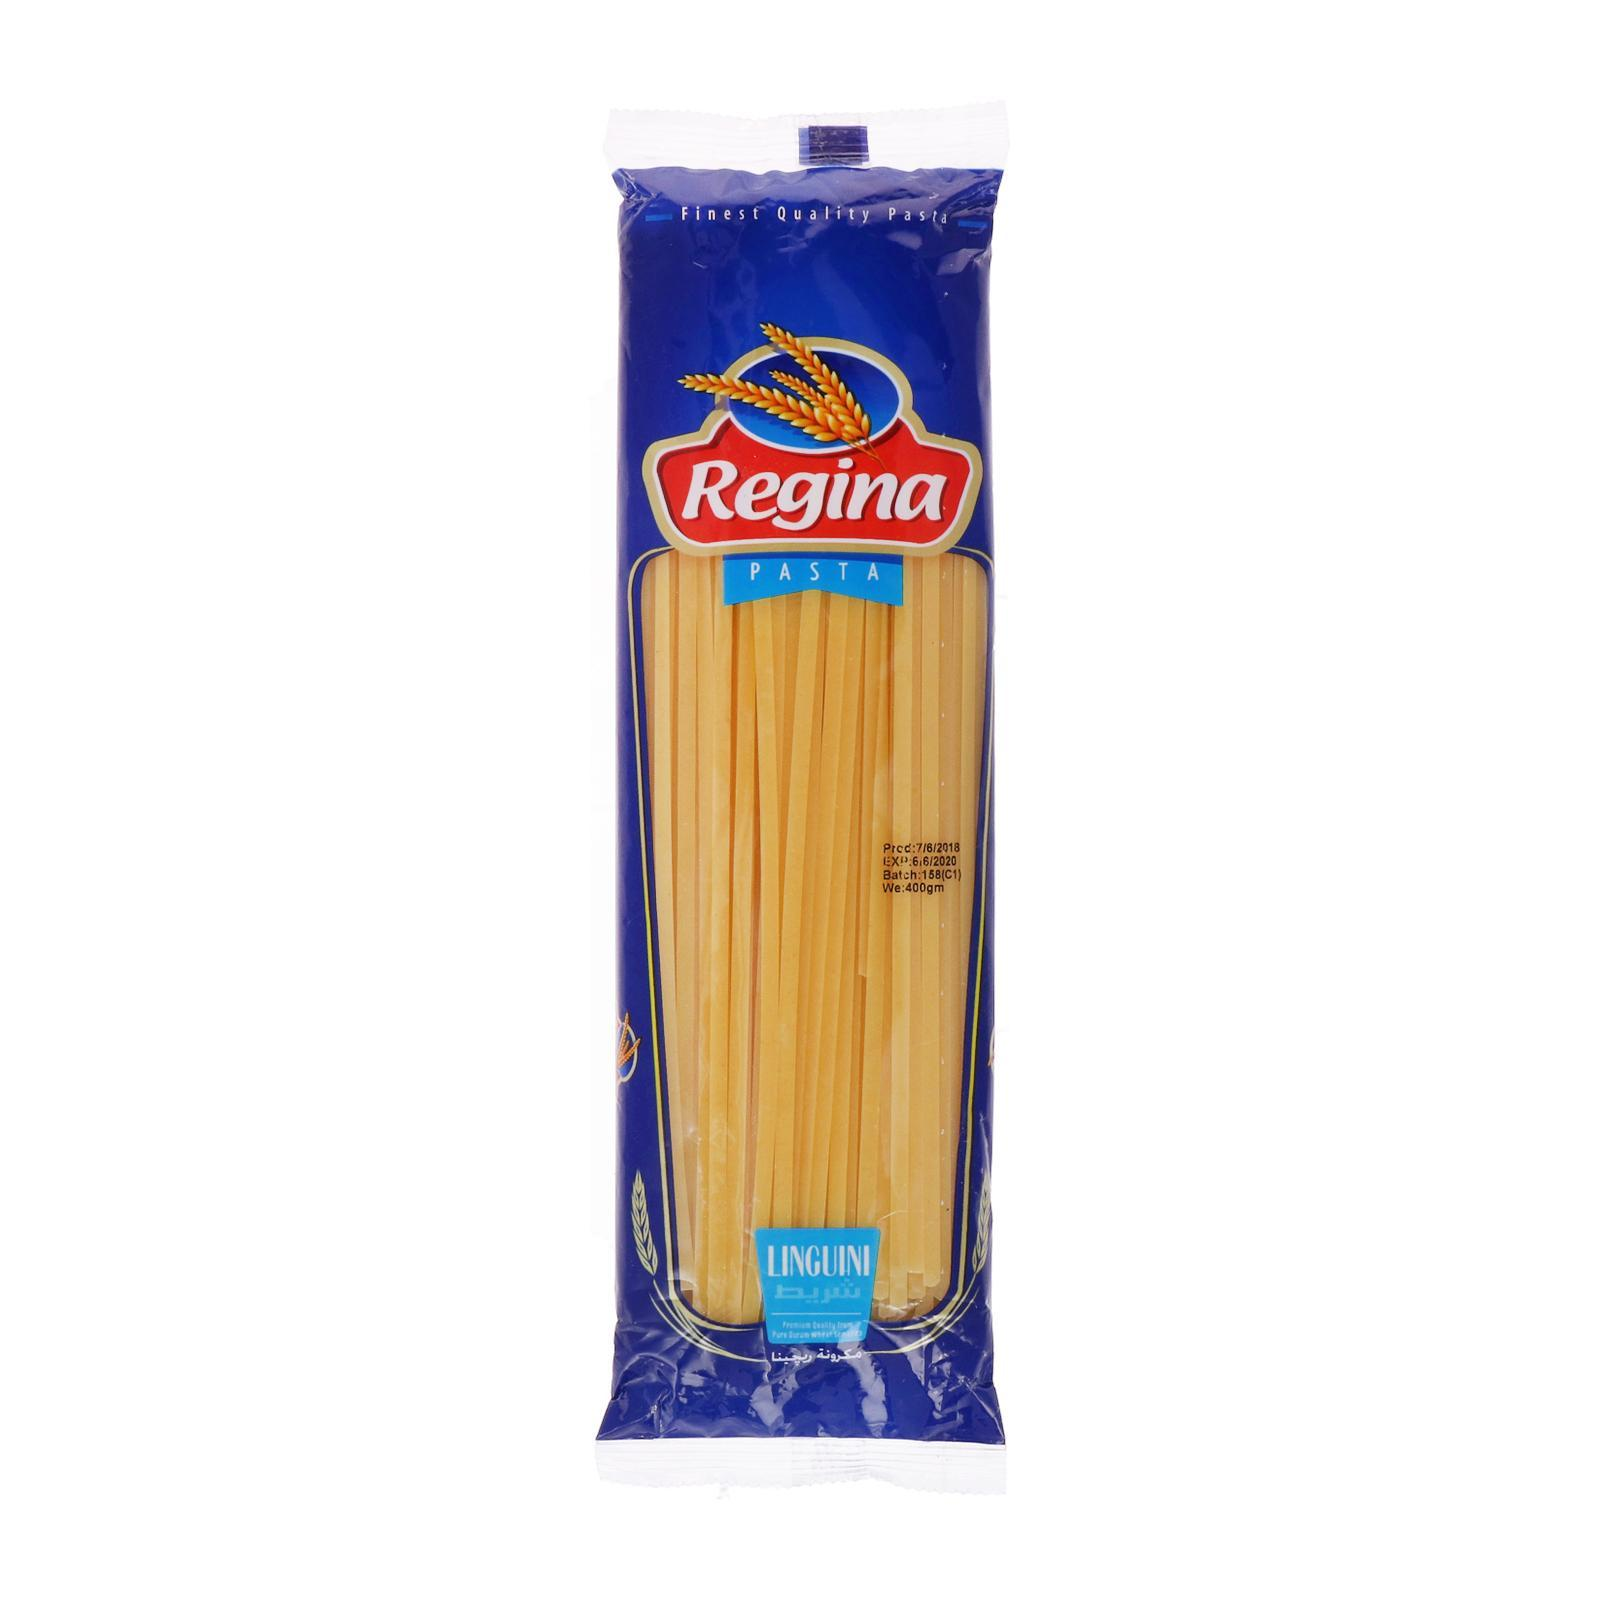 Regina Pasta (linguini) By Redmart.